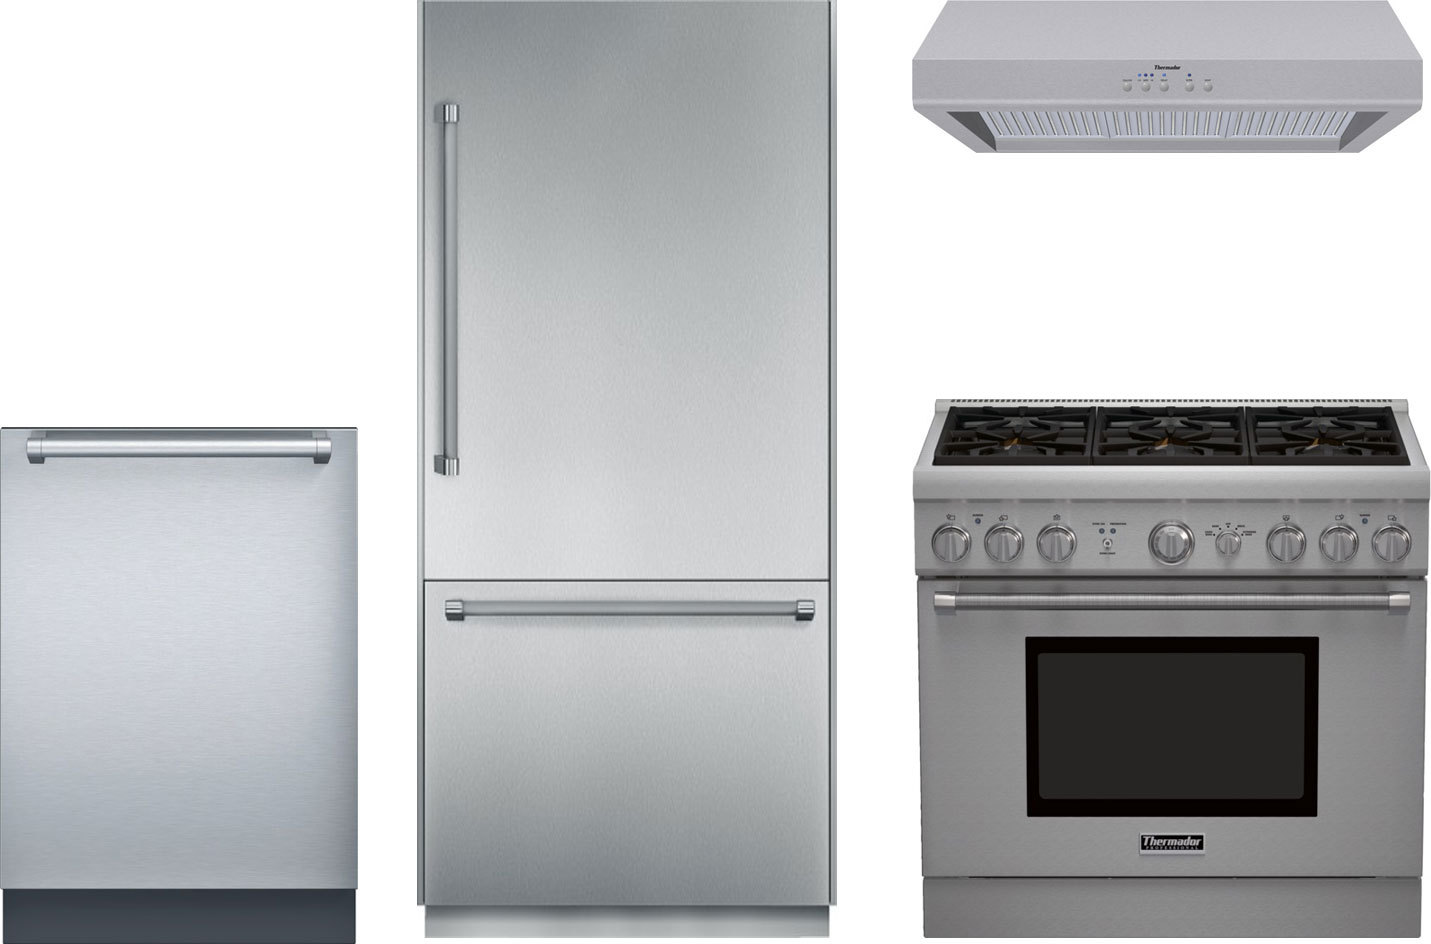 Superb Thermador Kitchen Package With PRG366GH Gas Range, T36BB820SS Refrigerator,  DWHD440MFP Dishwasher U0026 HPWB36FS Range Hood